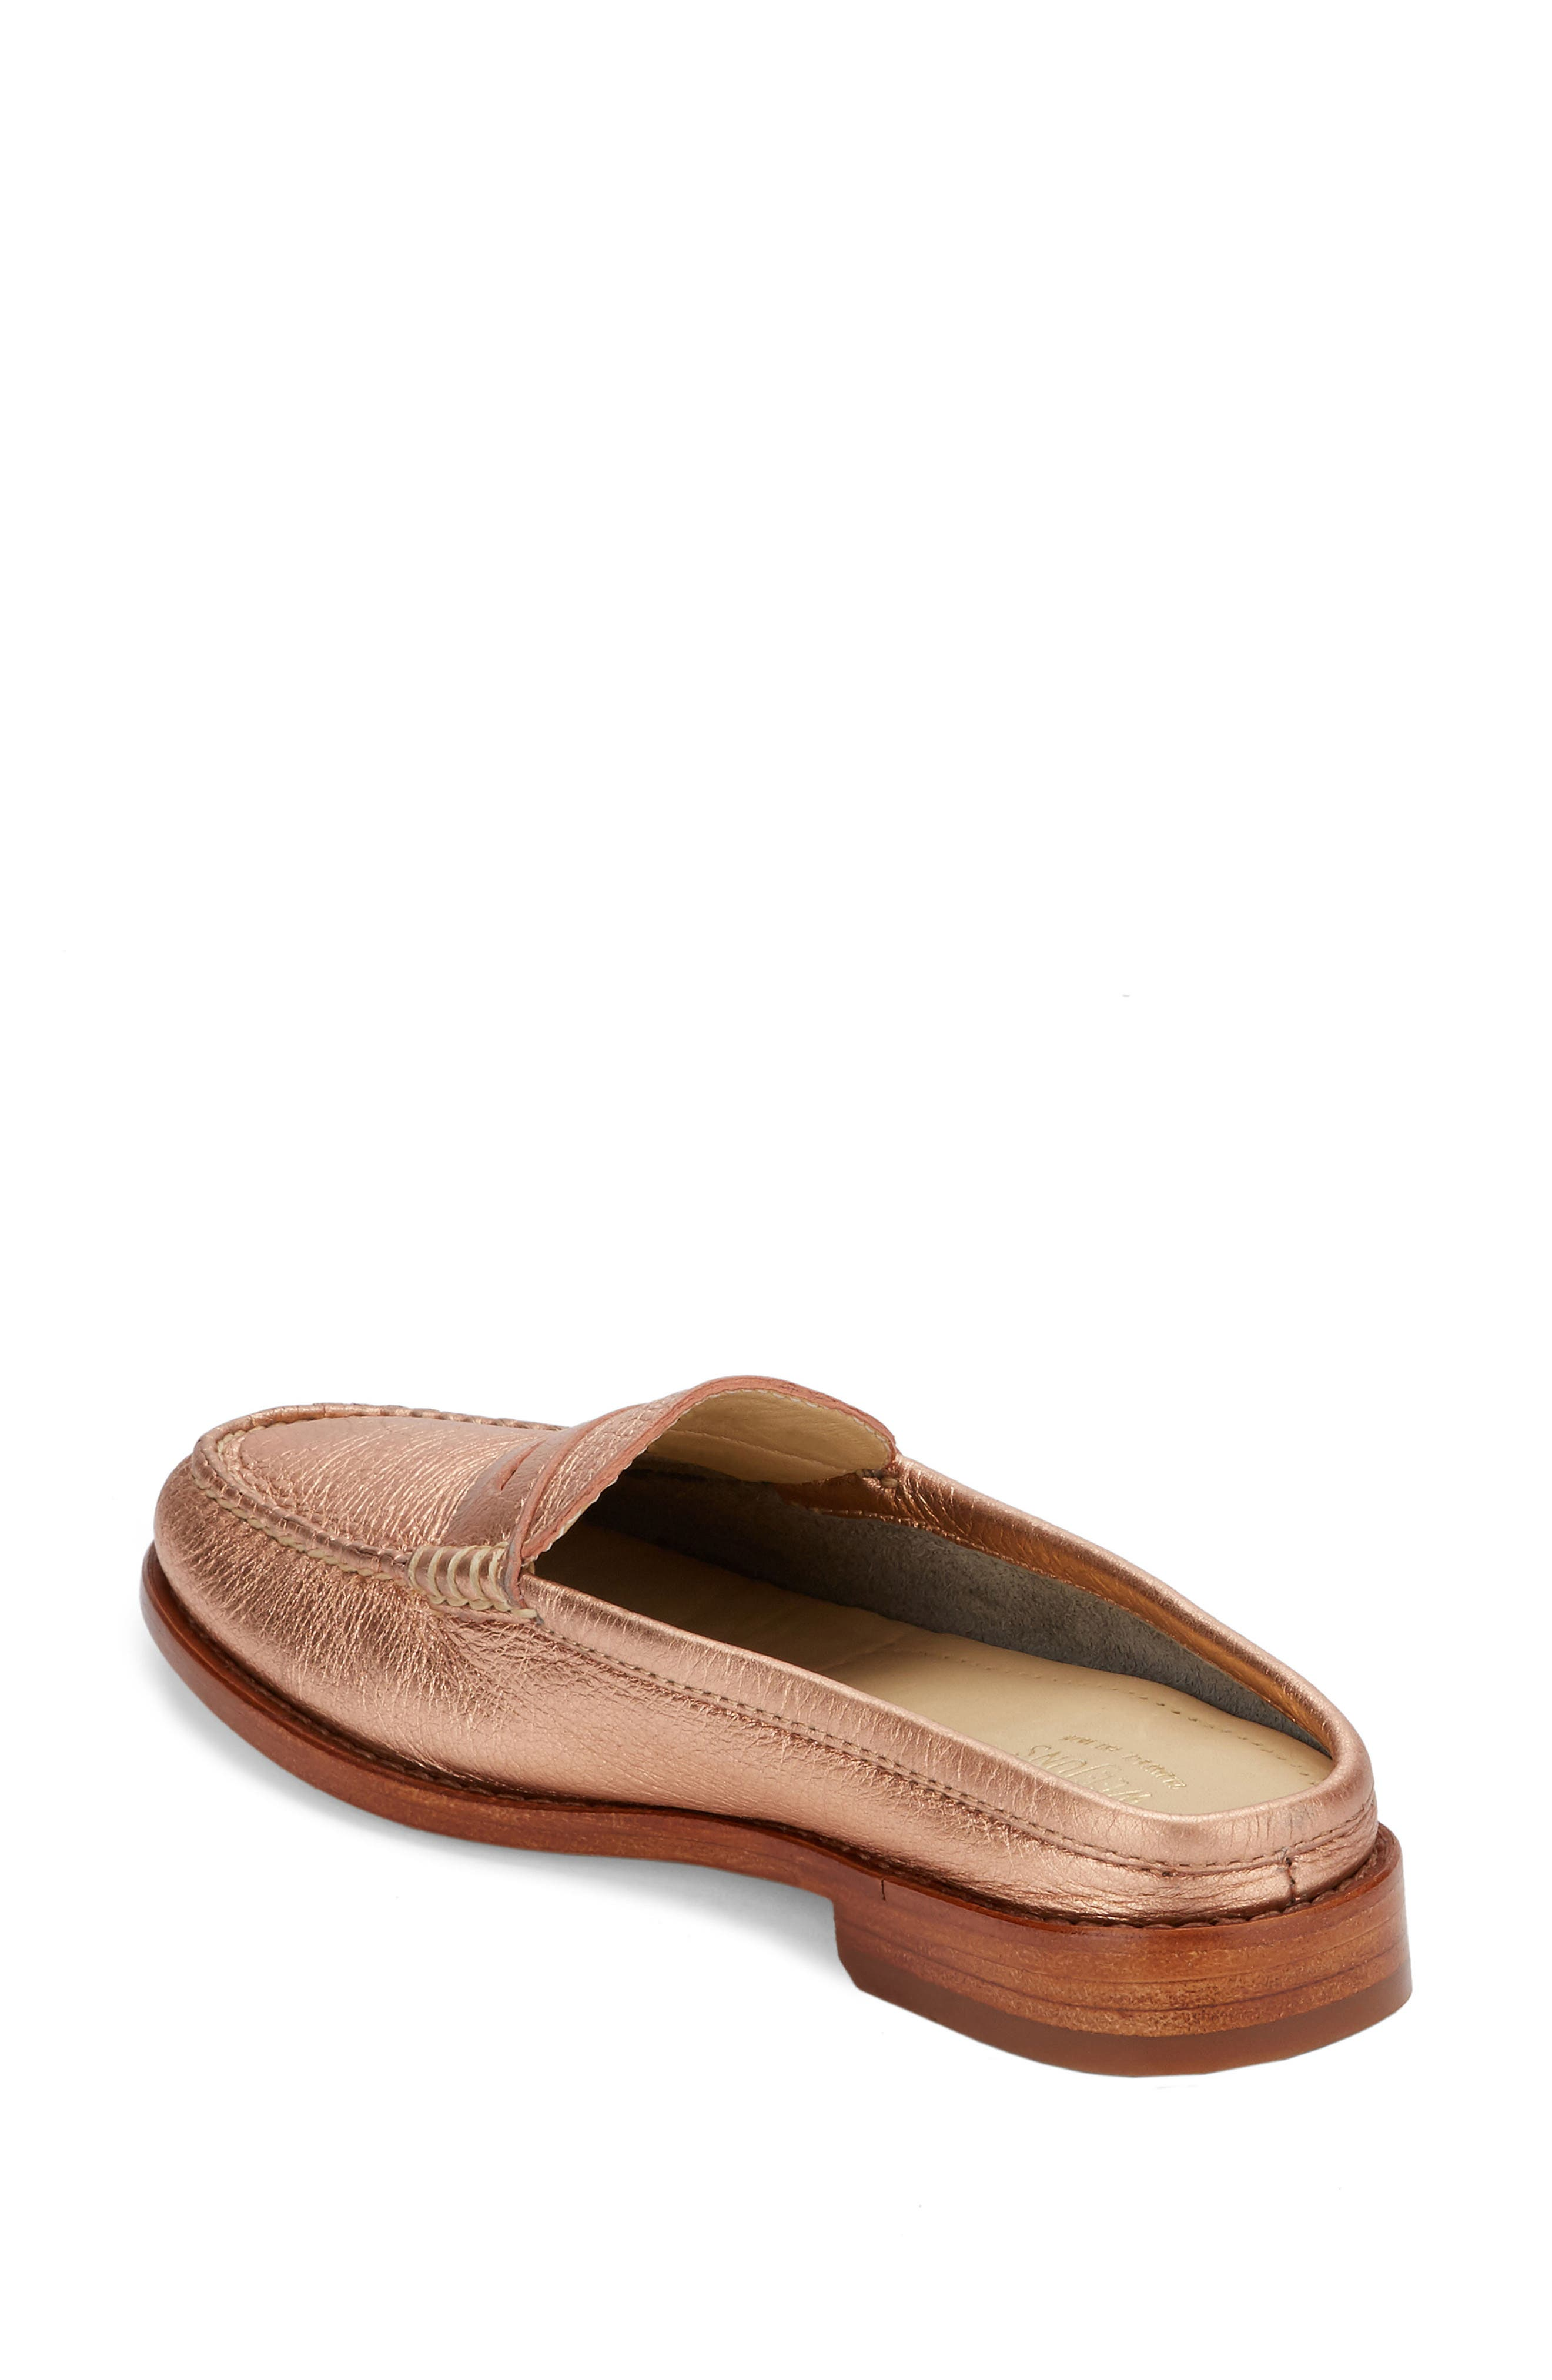 Wynn Loafer Mule,                             Alternate thumbnail 46, color,